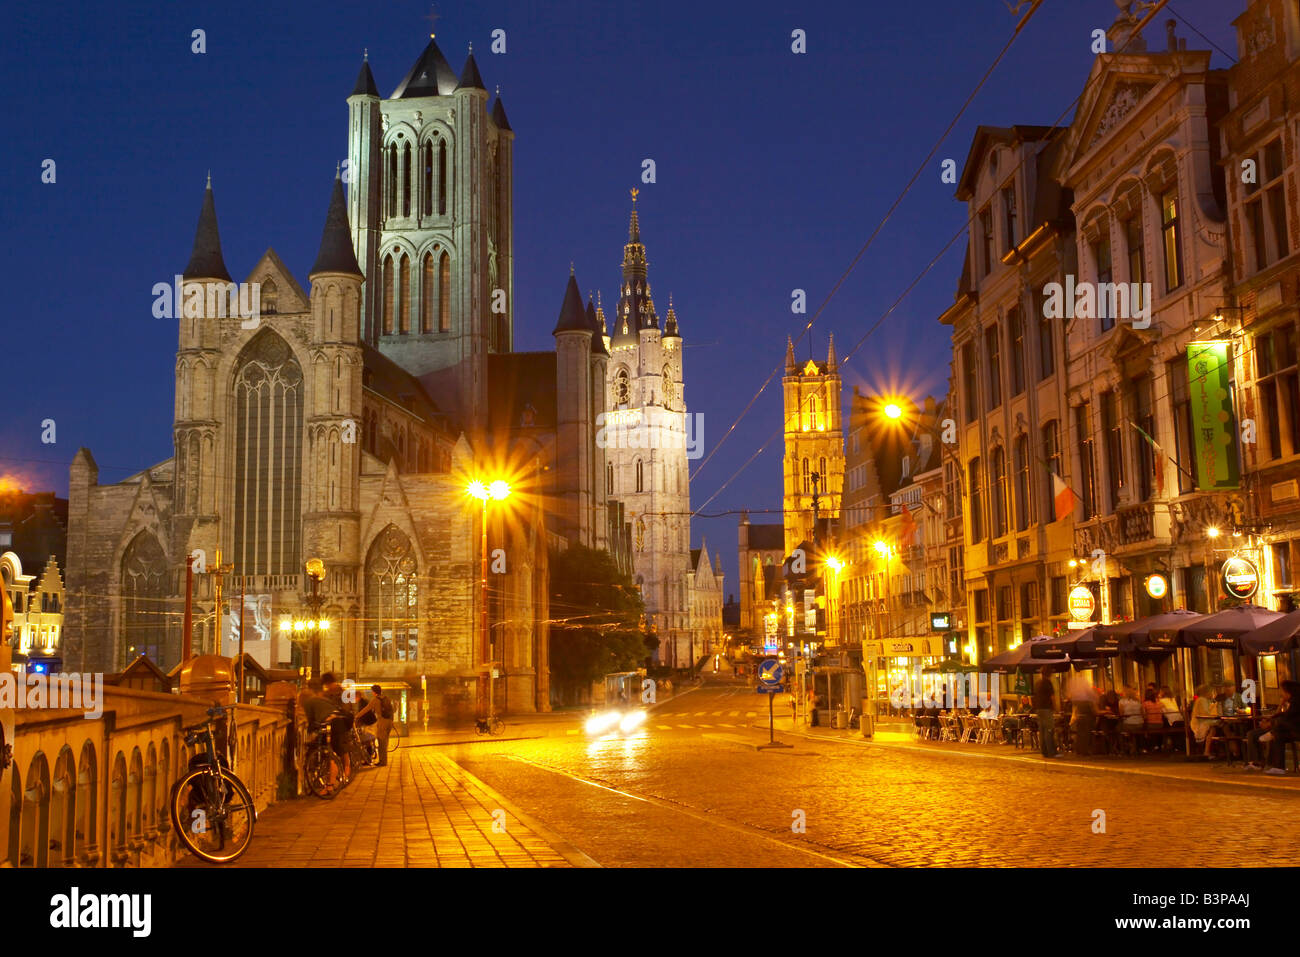 Central Ghent at night, from St Michael's Bridge, showing St Nicolas' church, the Belfry and St Bavo's - Stock Image